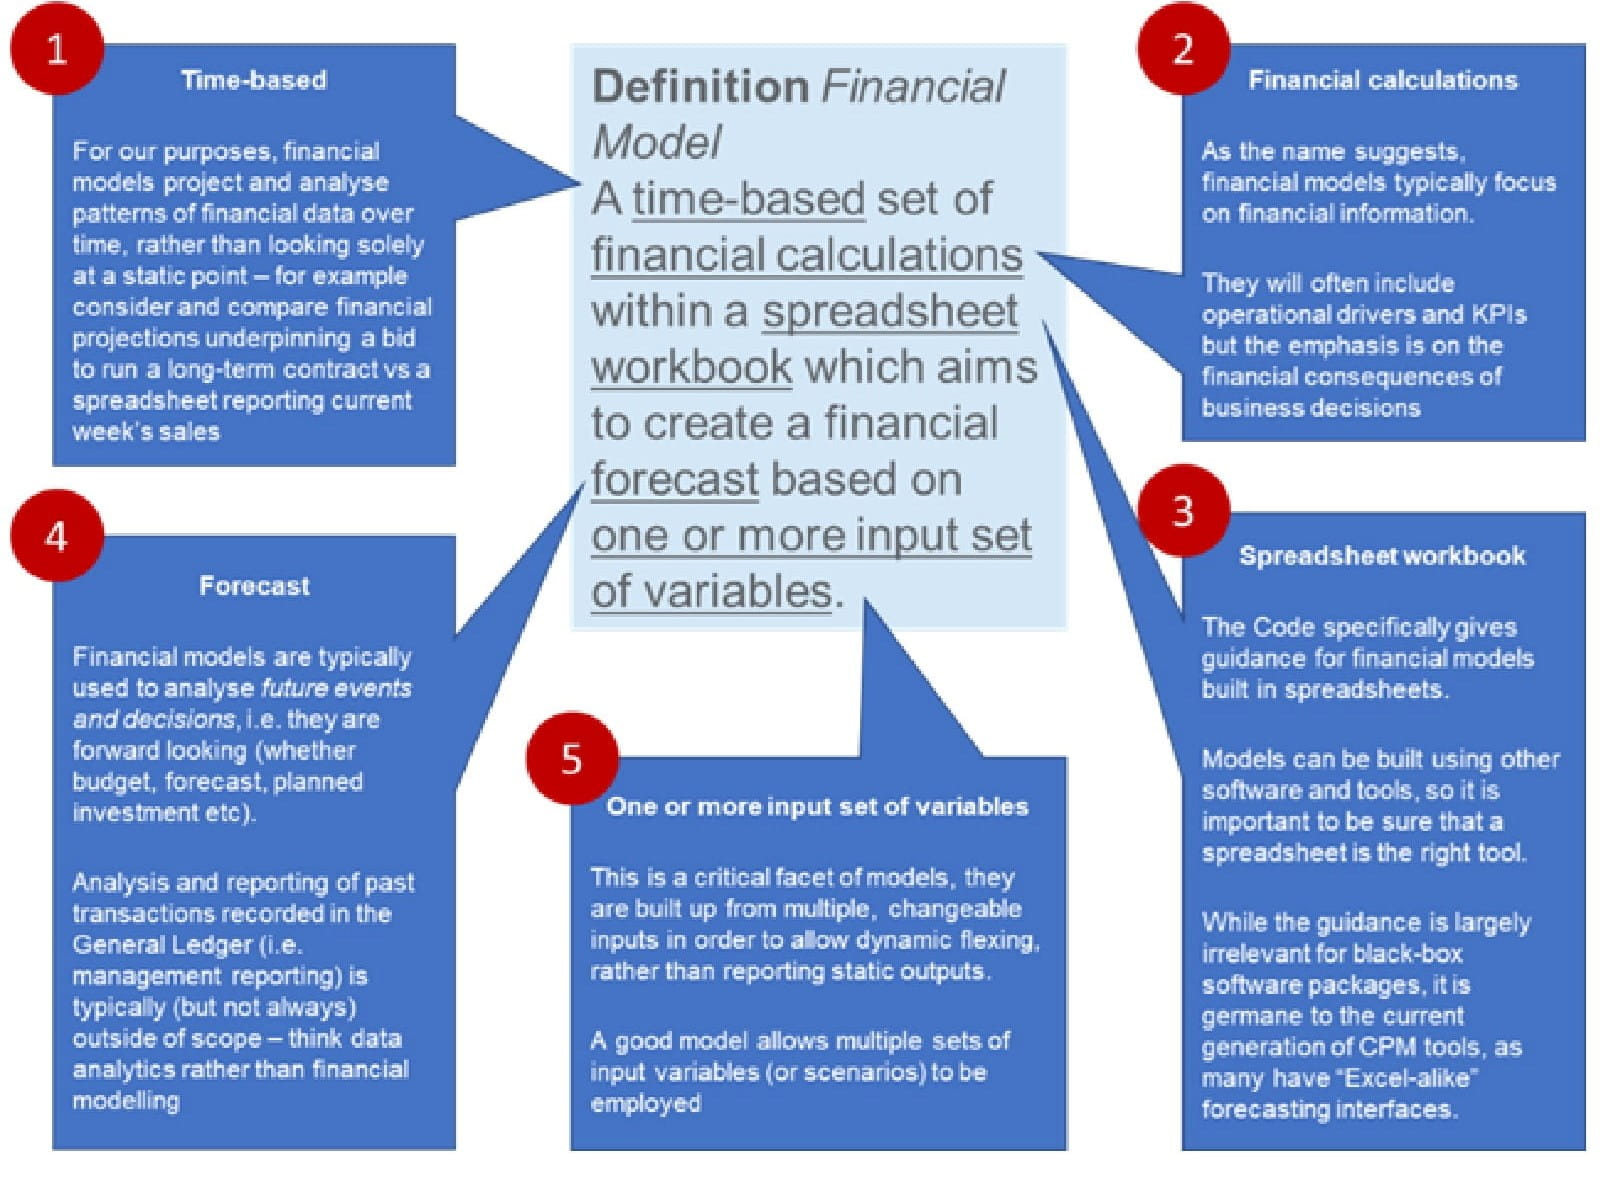 Determining what constitutes a financial model